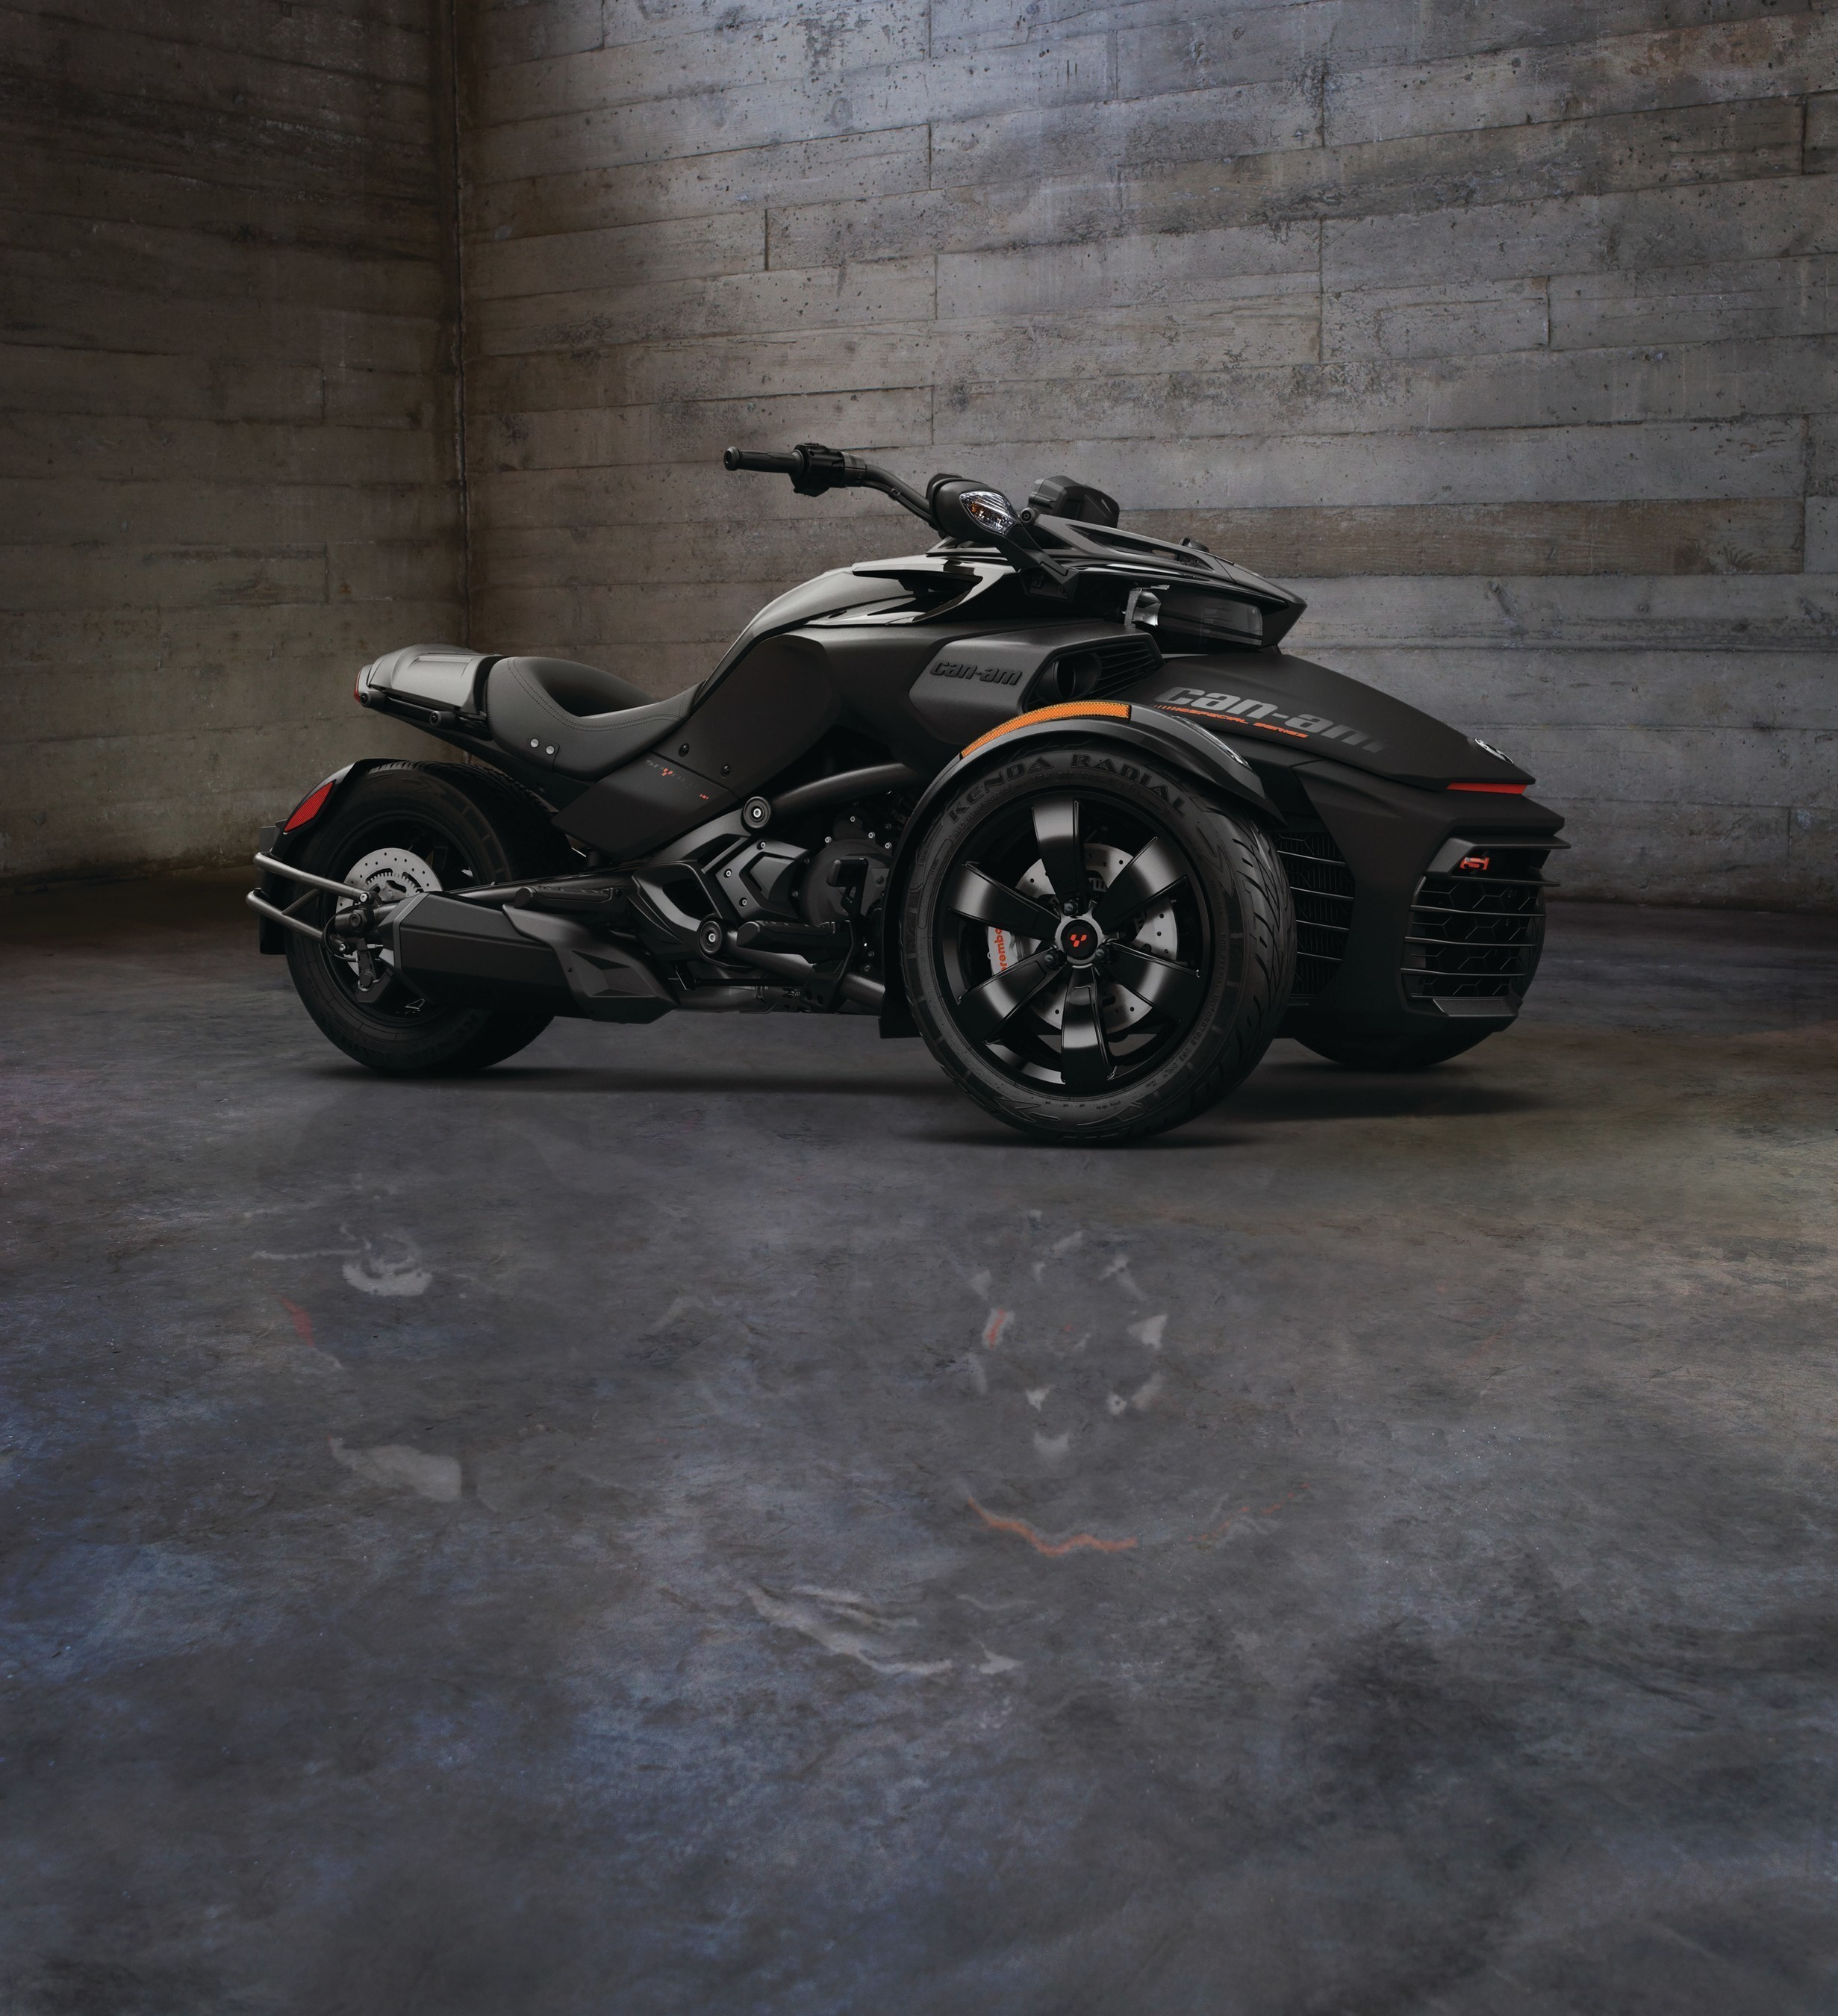 brp unveils 2016 can am spyder f3 s special series at sturgis motorcycle rally. Black Bedroom Furniture Sets. Home Design Ideas